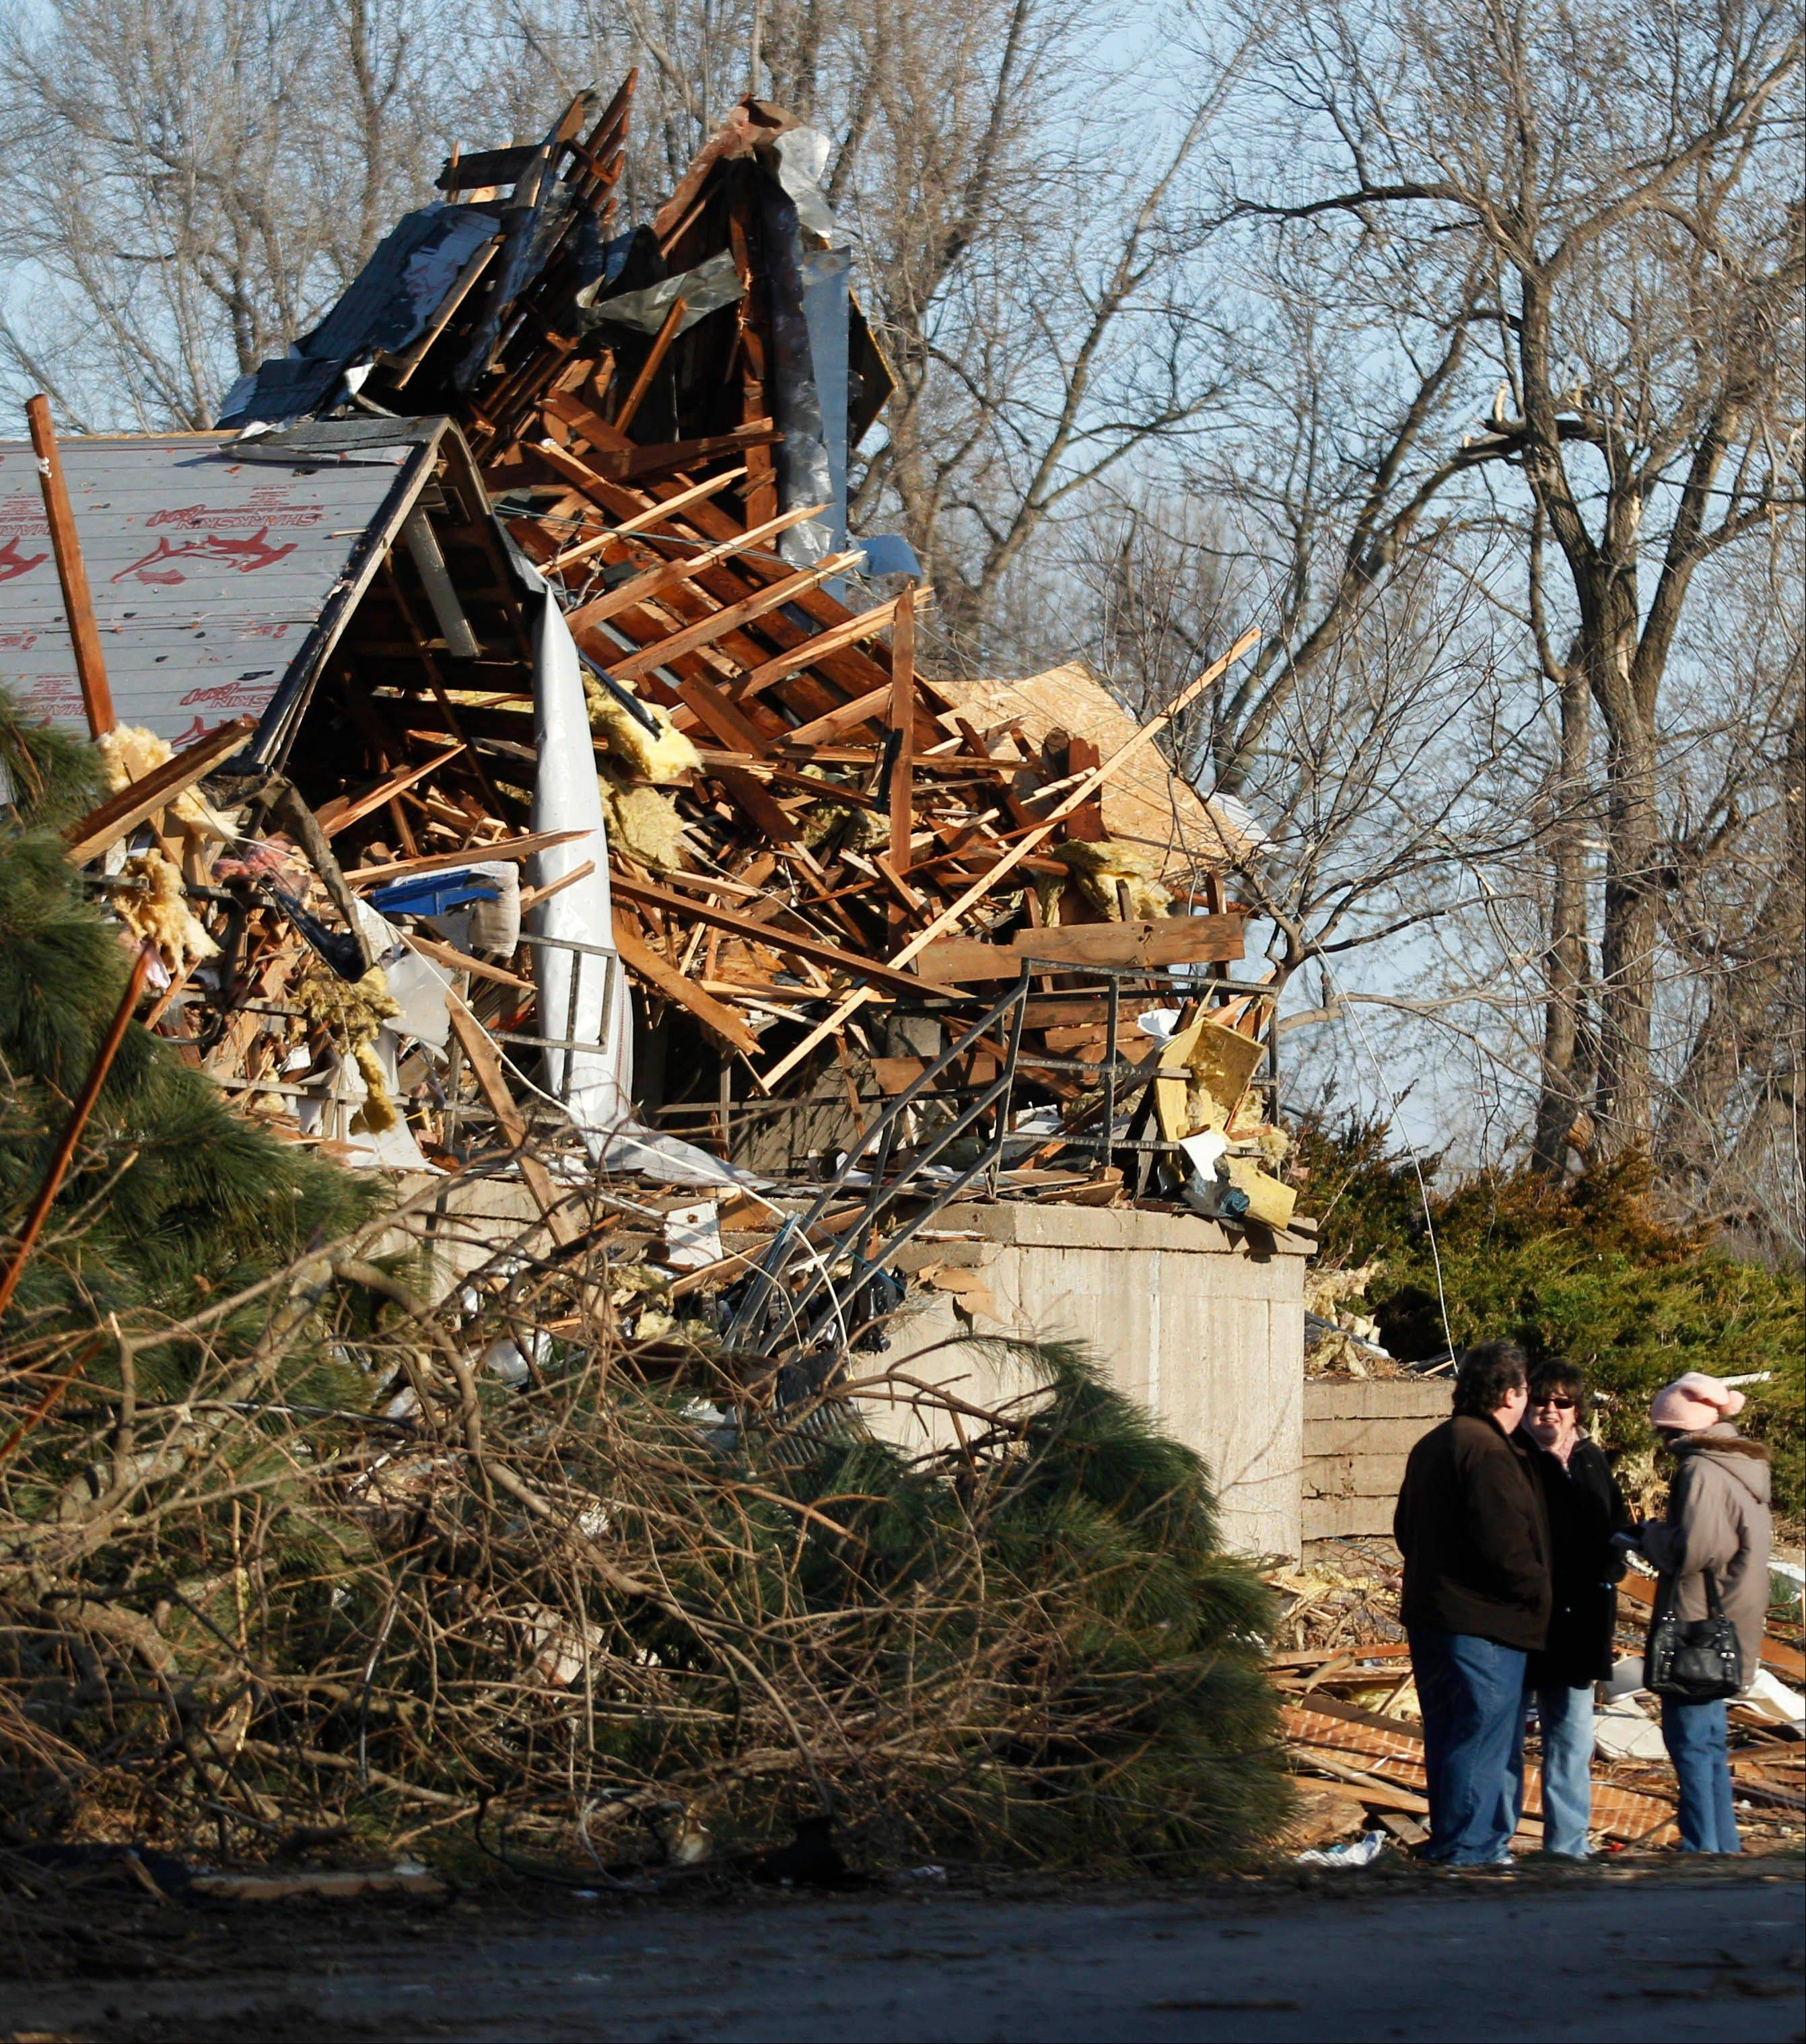 Residents talk in front of a home after severe storms destroyed several homes and businesses in Harveyville, Kan., Wednesday, Feb. 29, 2012.